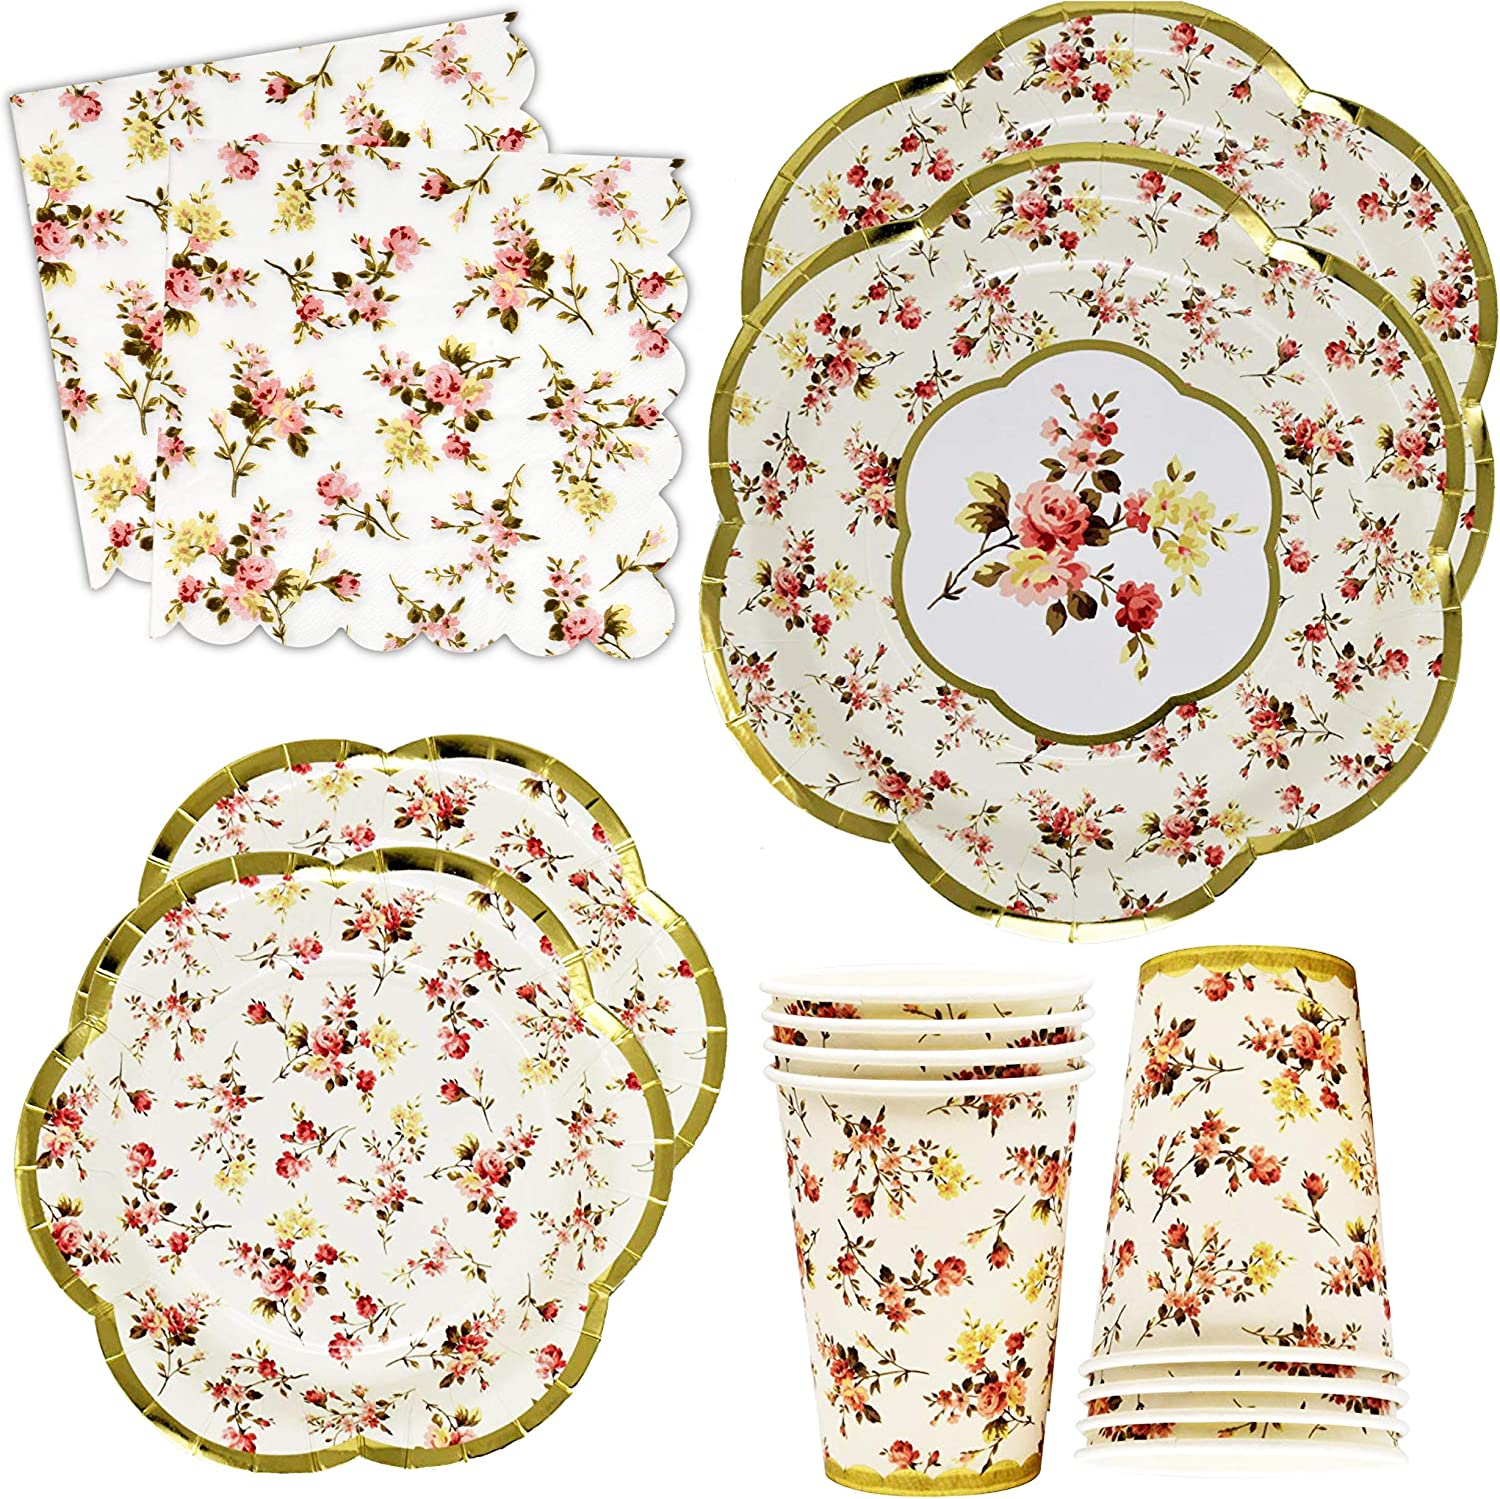 "Gold Foil Vintage Floral Party Supplies Set Scalloped Edge 24 9"" Plates 24 7"" Plate 24 9 Oz Cup 50 Lunch Napkin for Bridal Baby Shower Wedding Reception Garden Flower Birthday Tea Party Tableware"